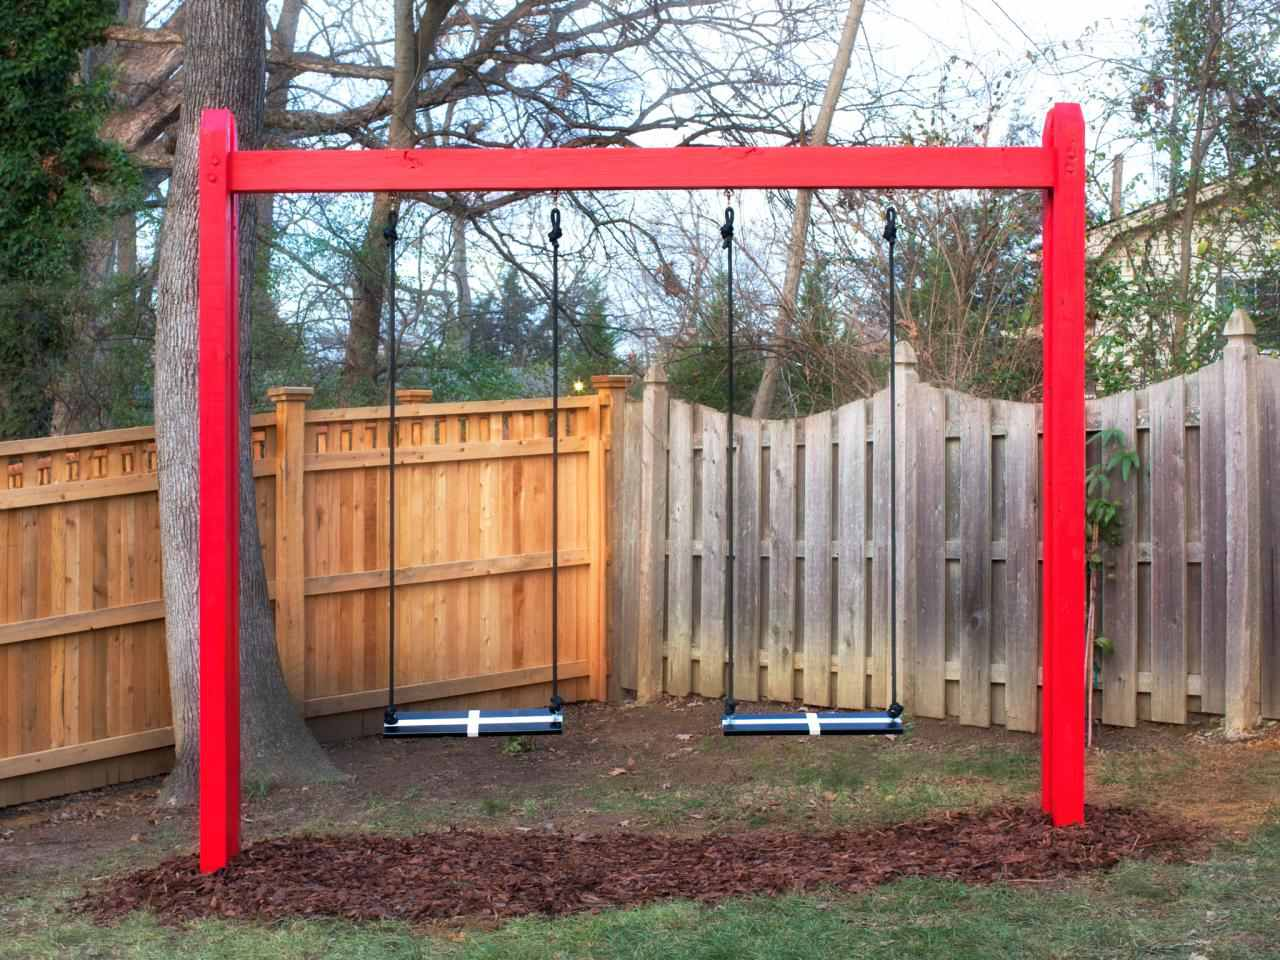 A basic wooden swing set